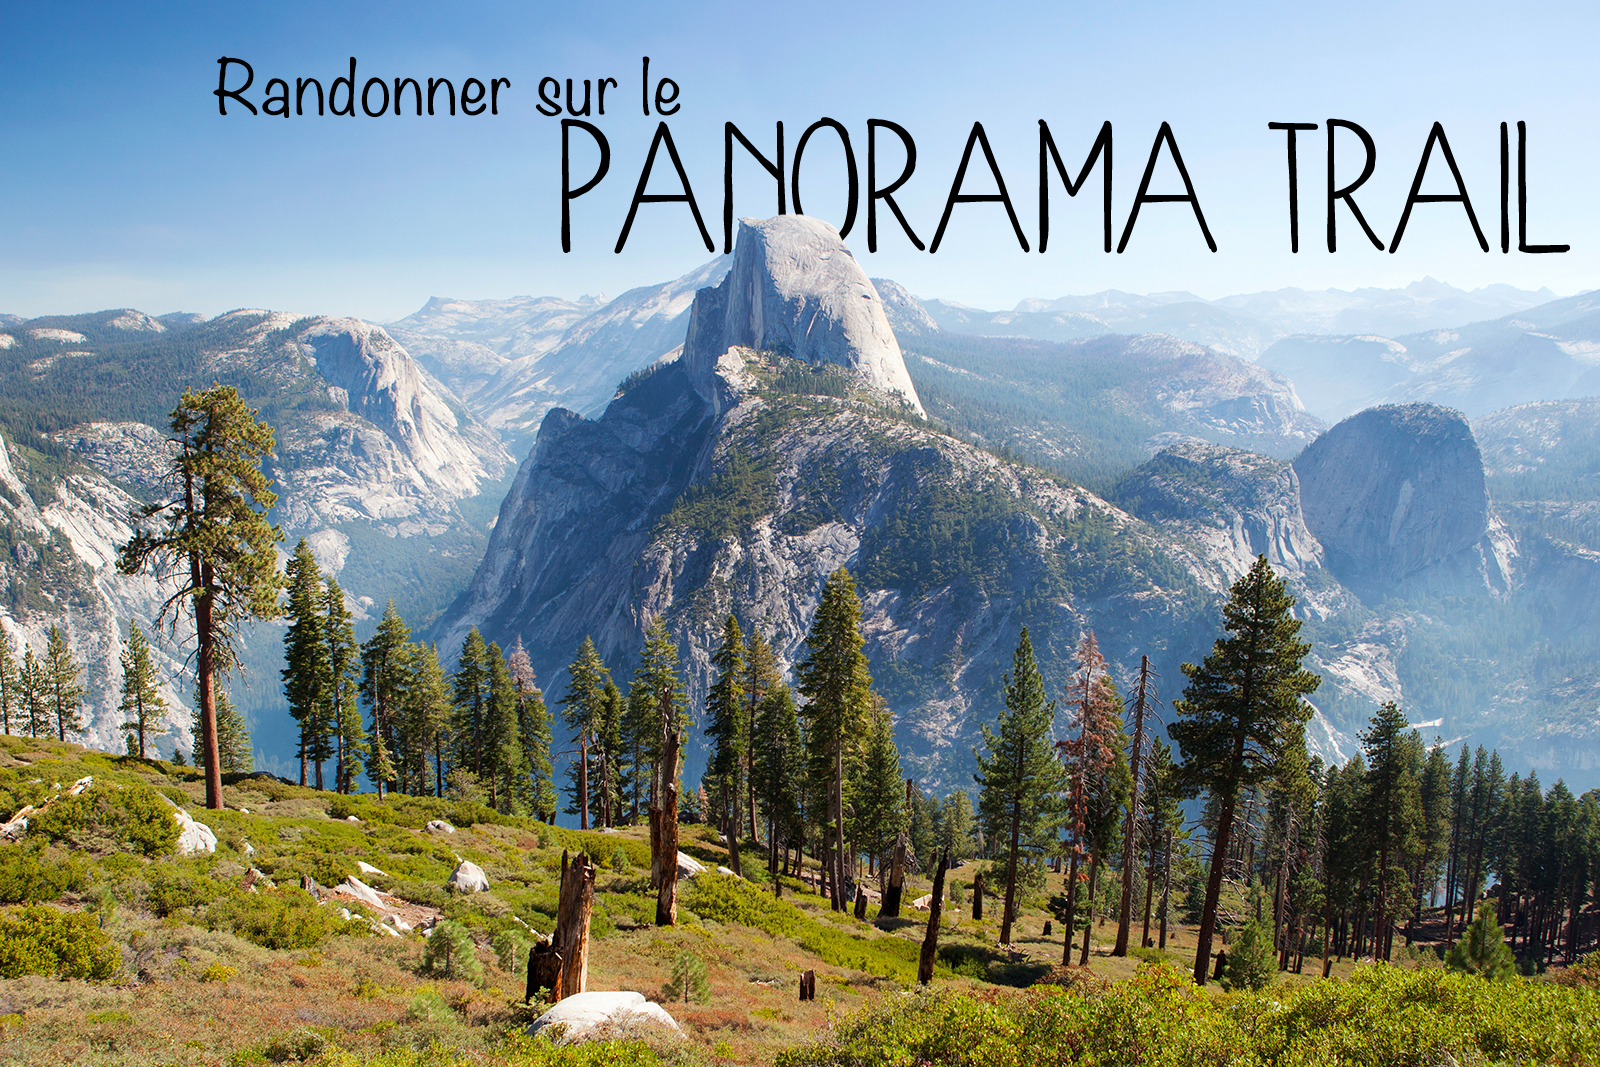 panorama-trail-randonnee-yosemite